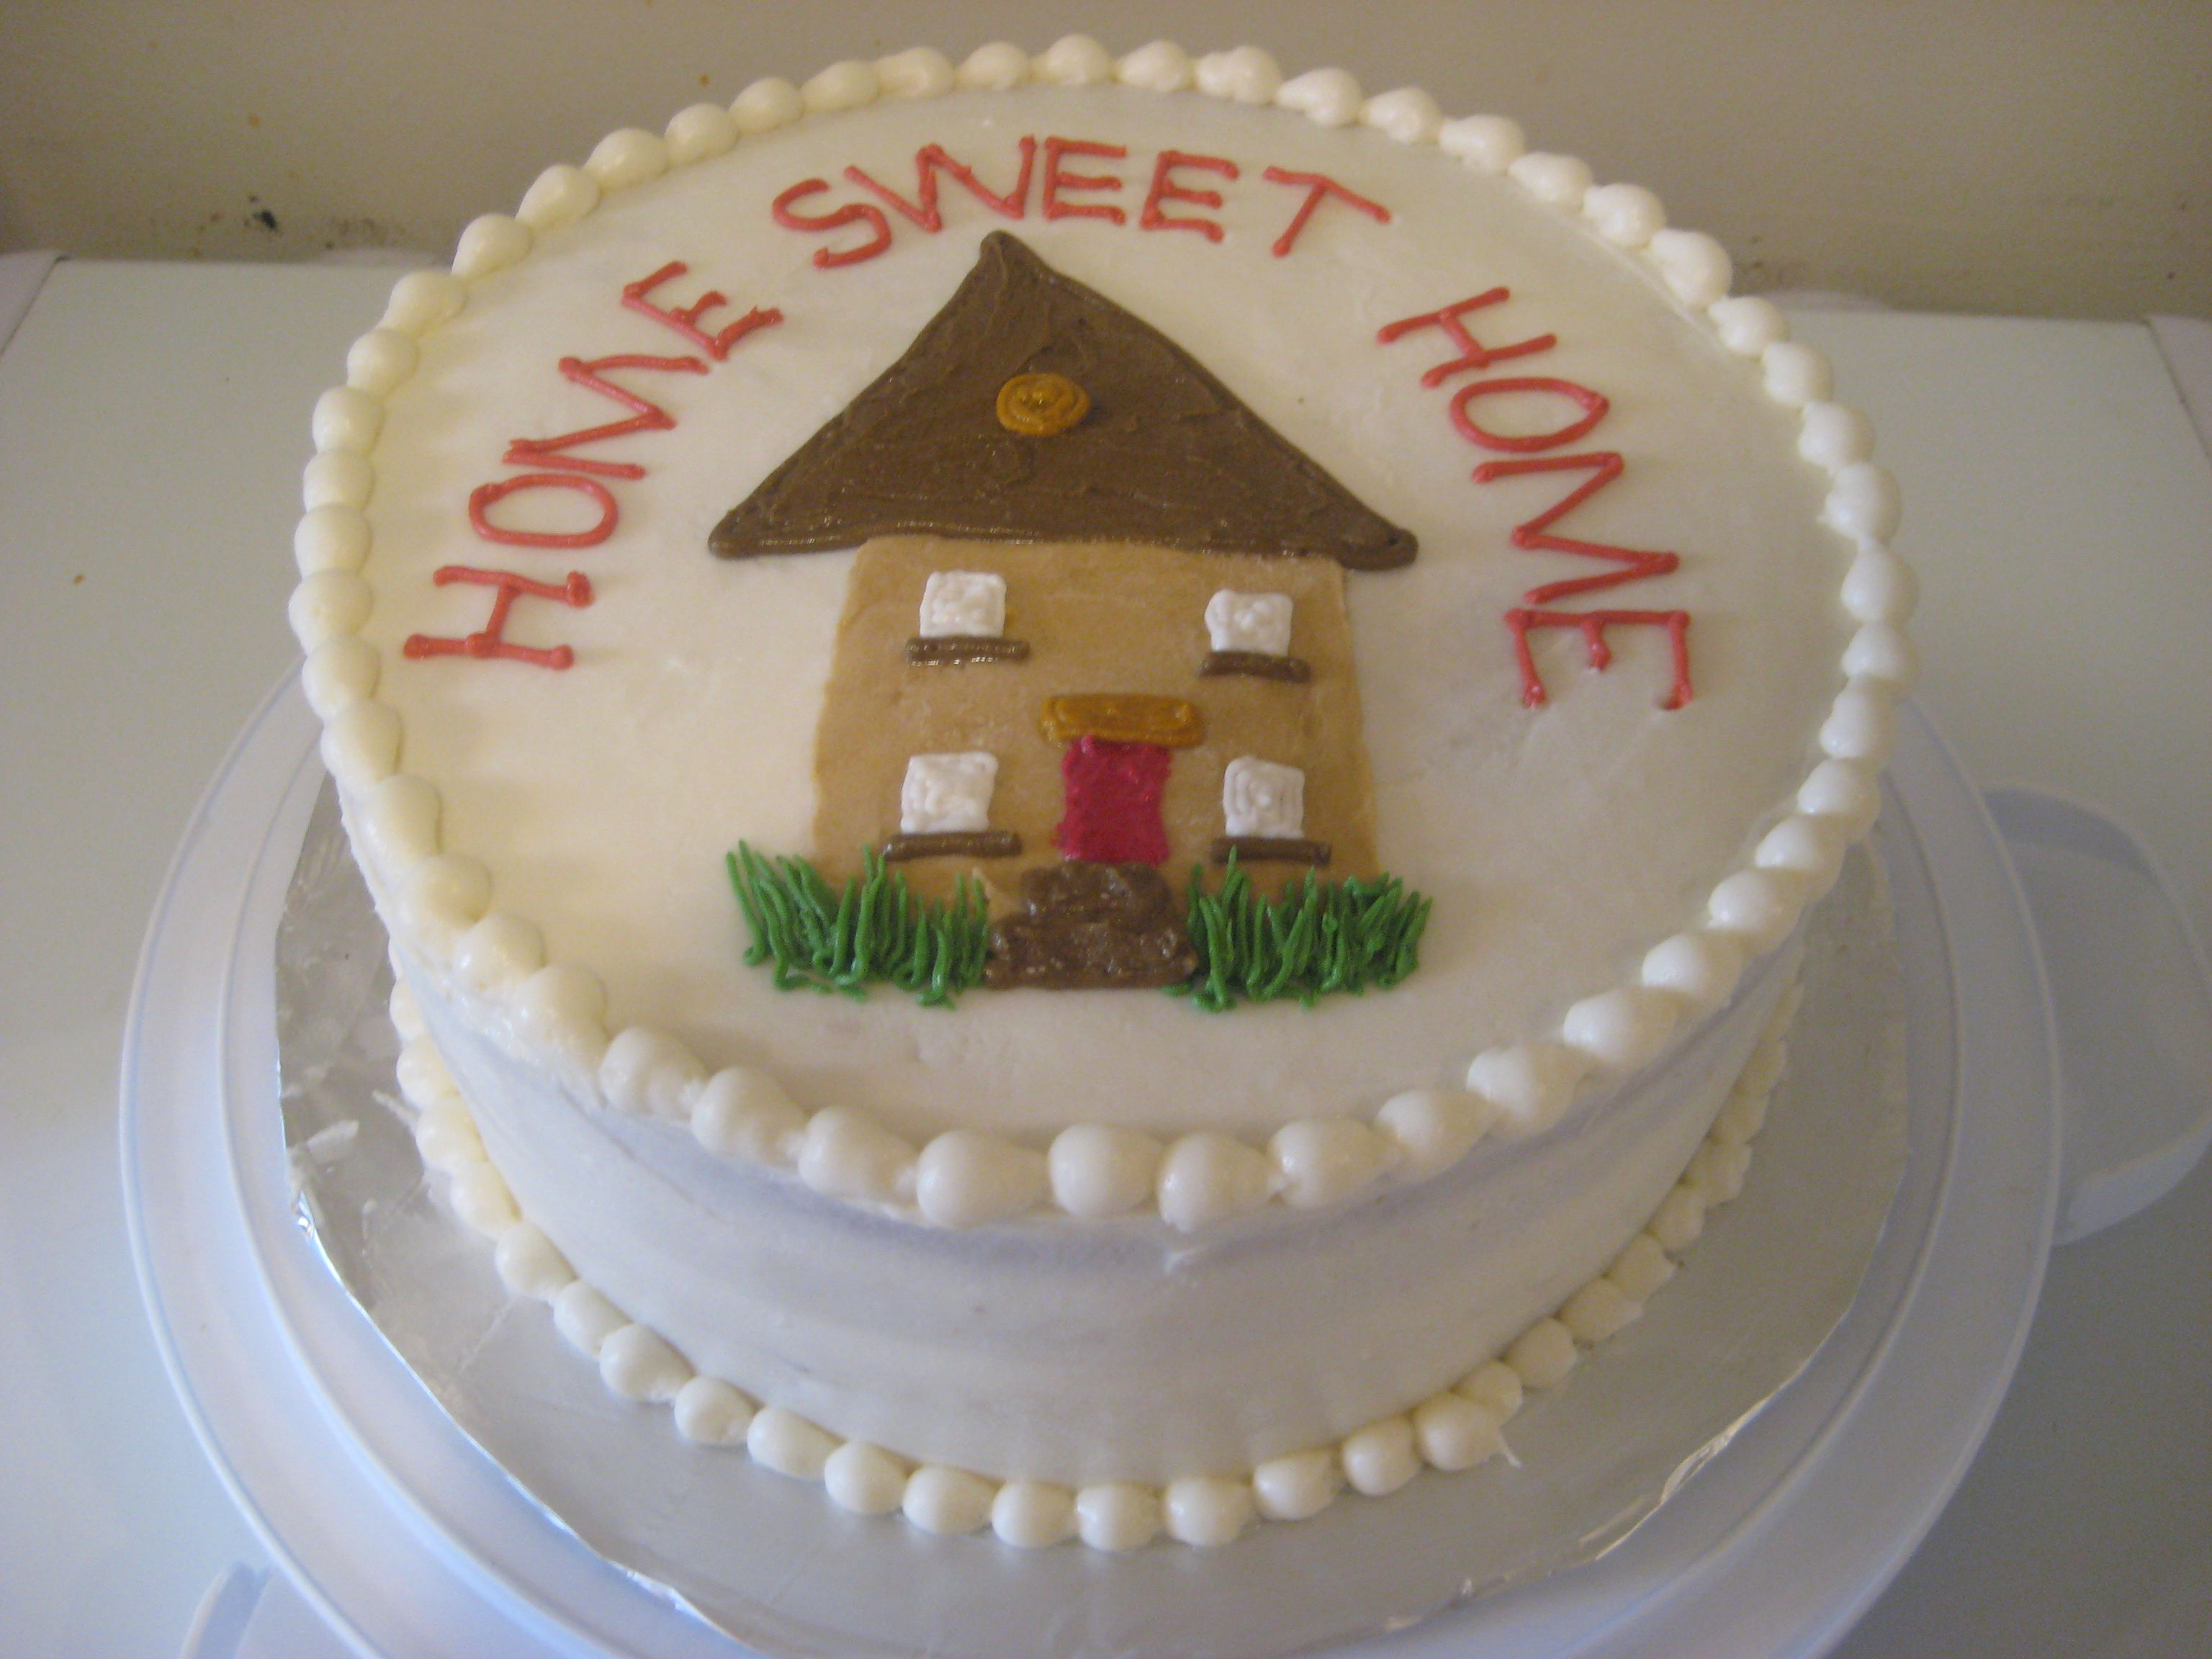 Cake Designs For Housewarming : Housewarming cake I did. Cake! Pinterest